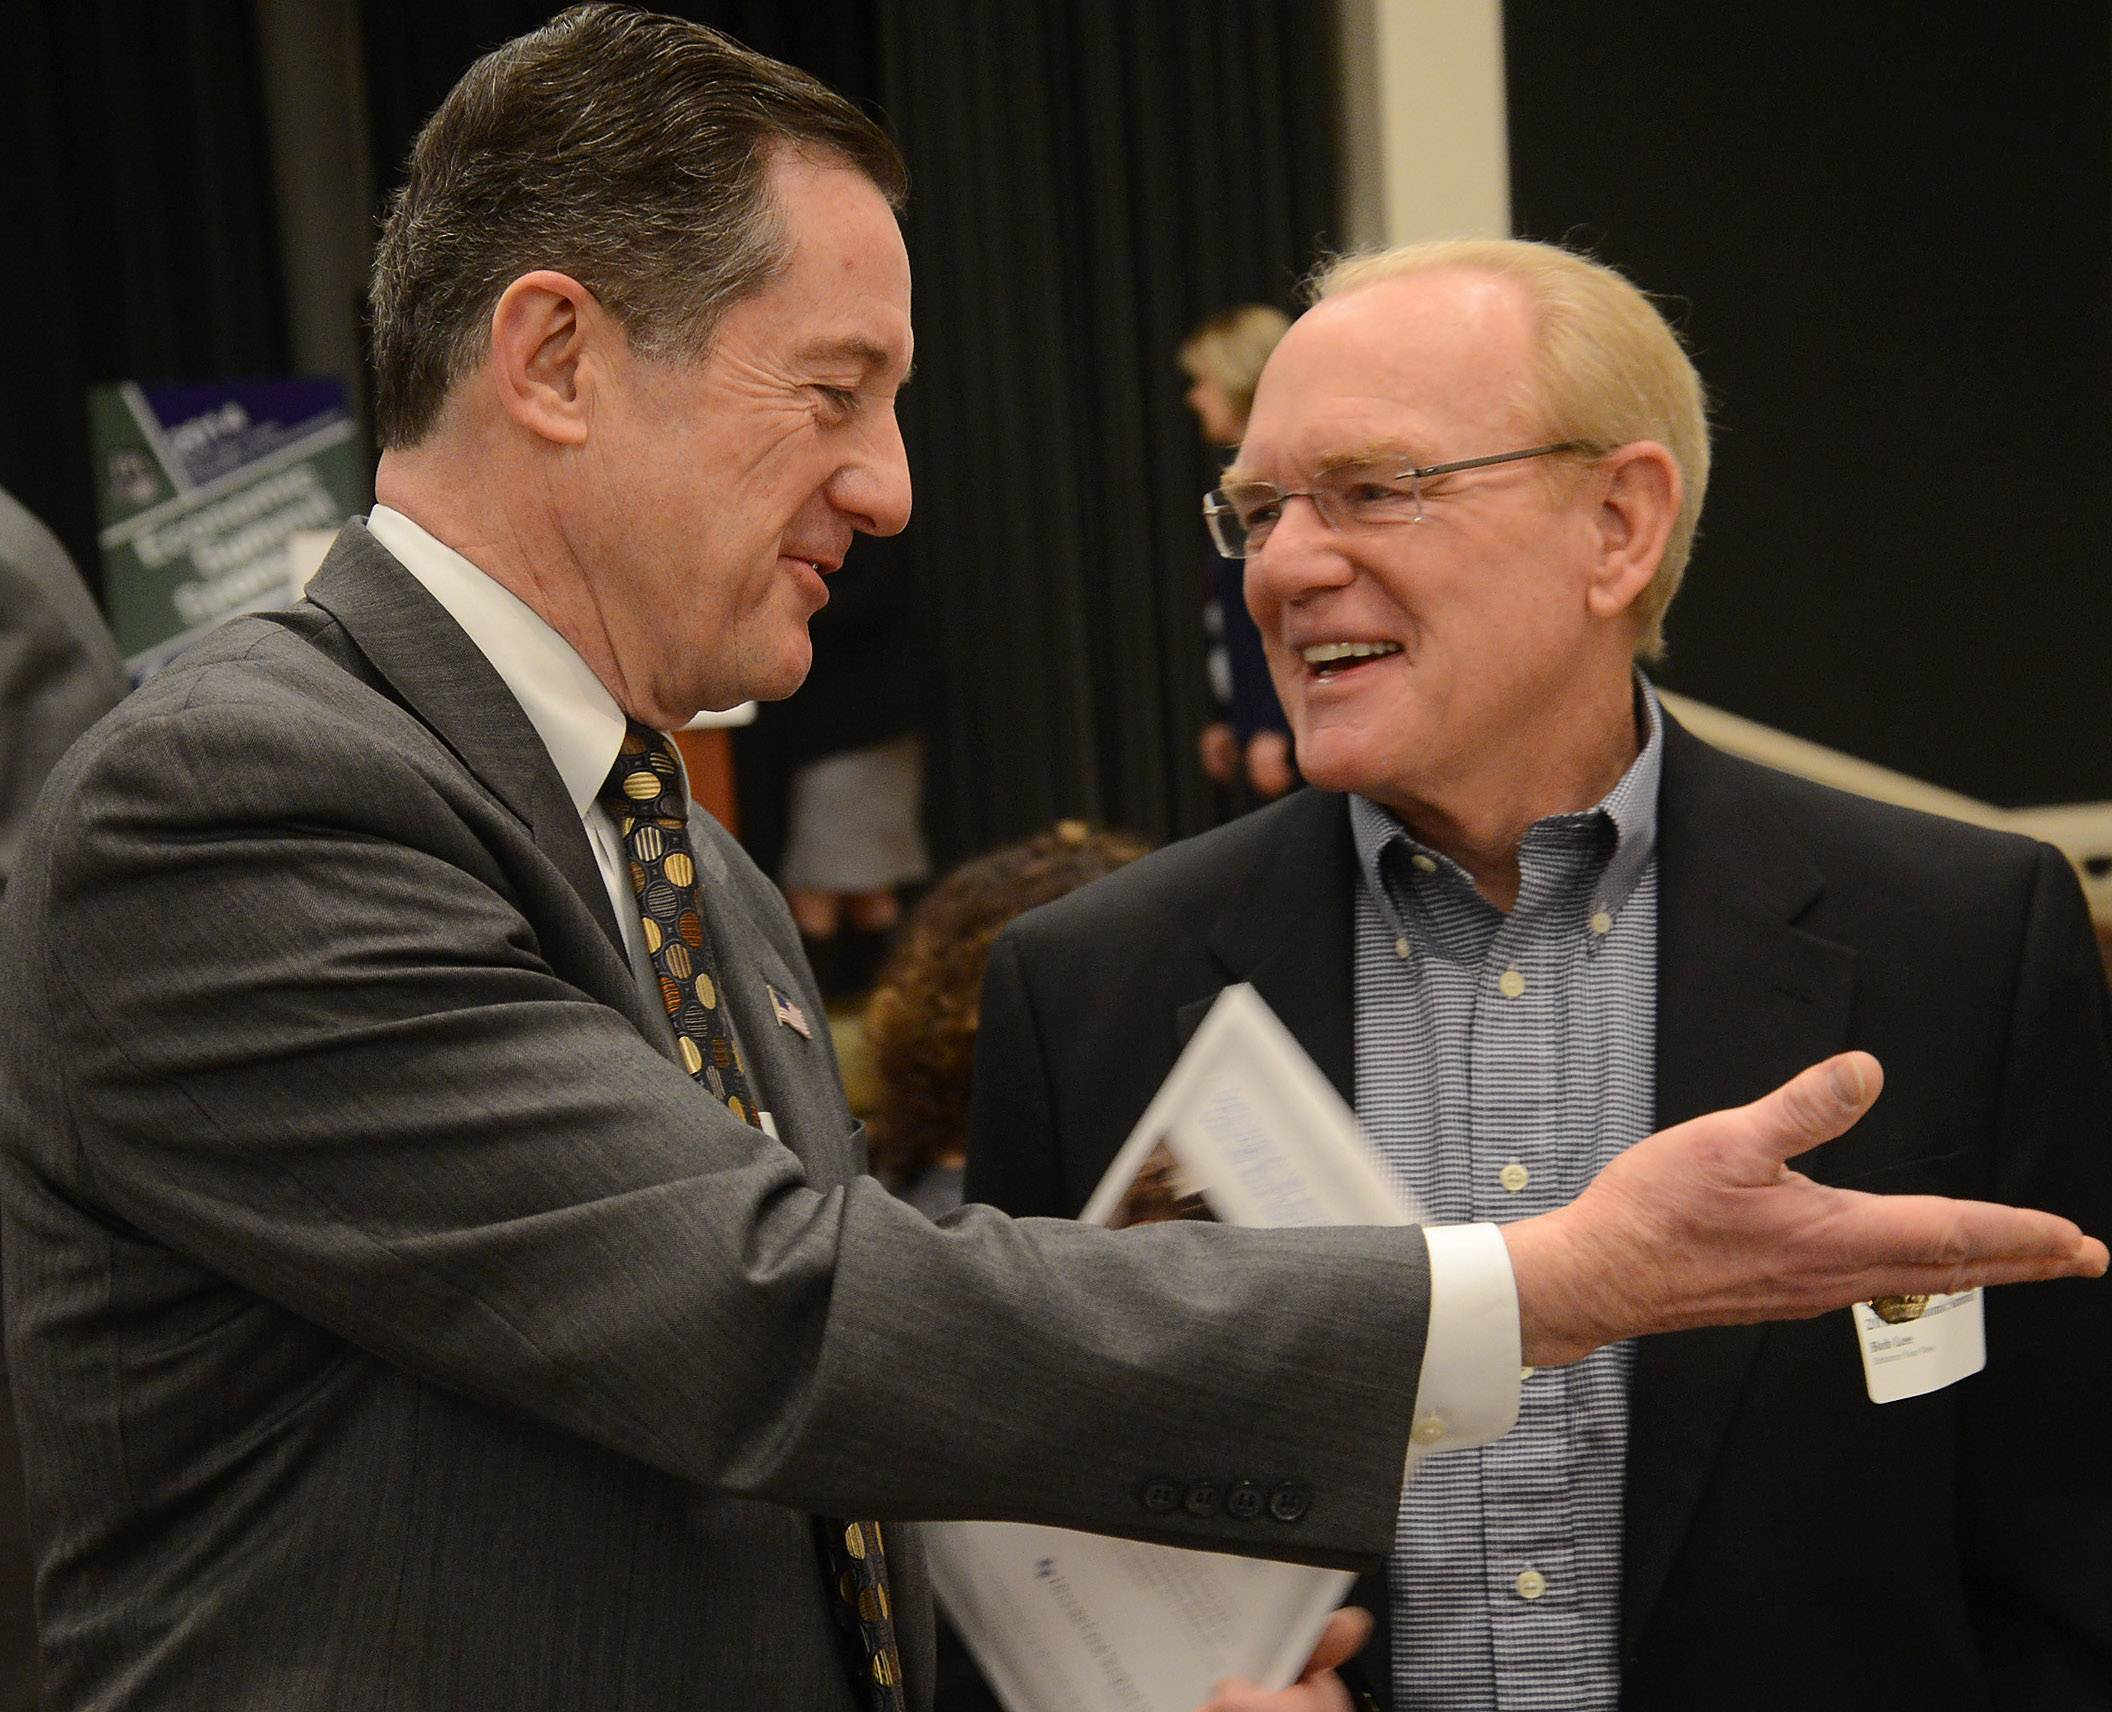 Joseph Connelly of BMO Harris Bank, left, talks with Bob Lee, of Enhance Your View, before the 2014 annual Economic Summit hosted Wednesday by the Barrington Area Chamber of Commerce.